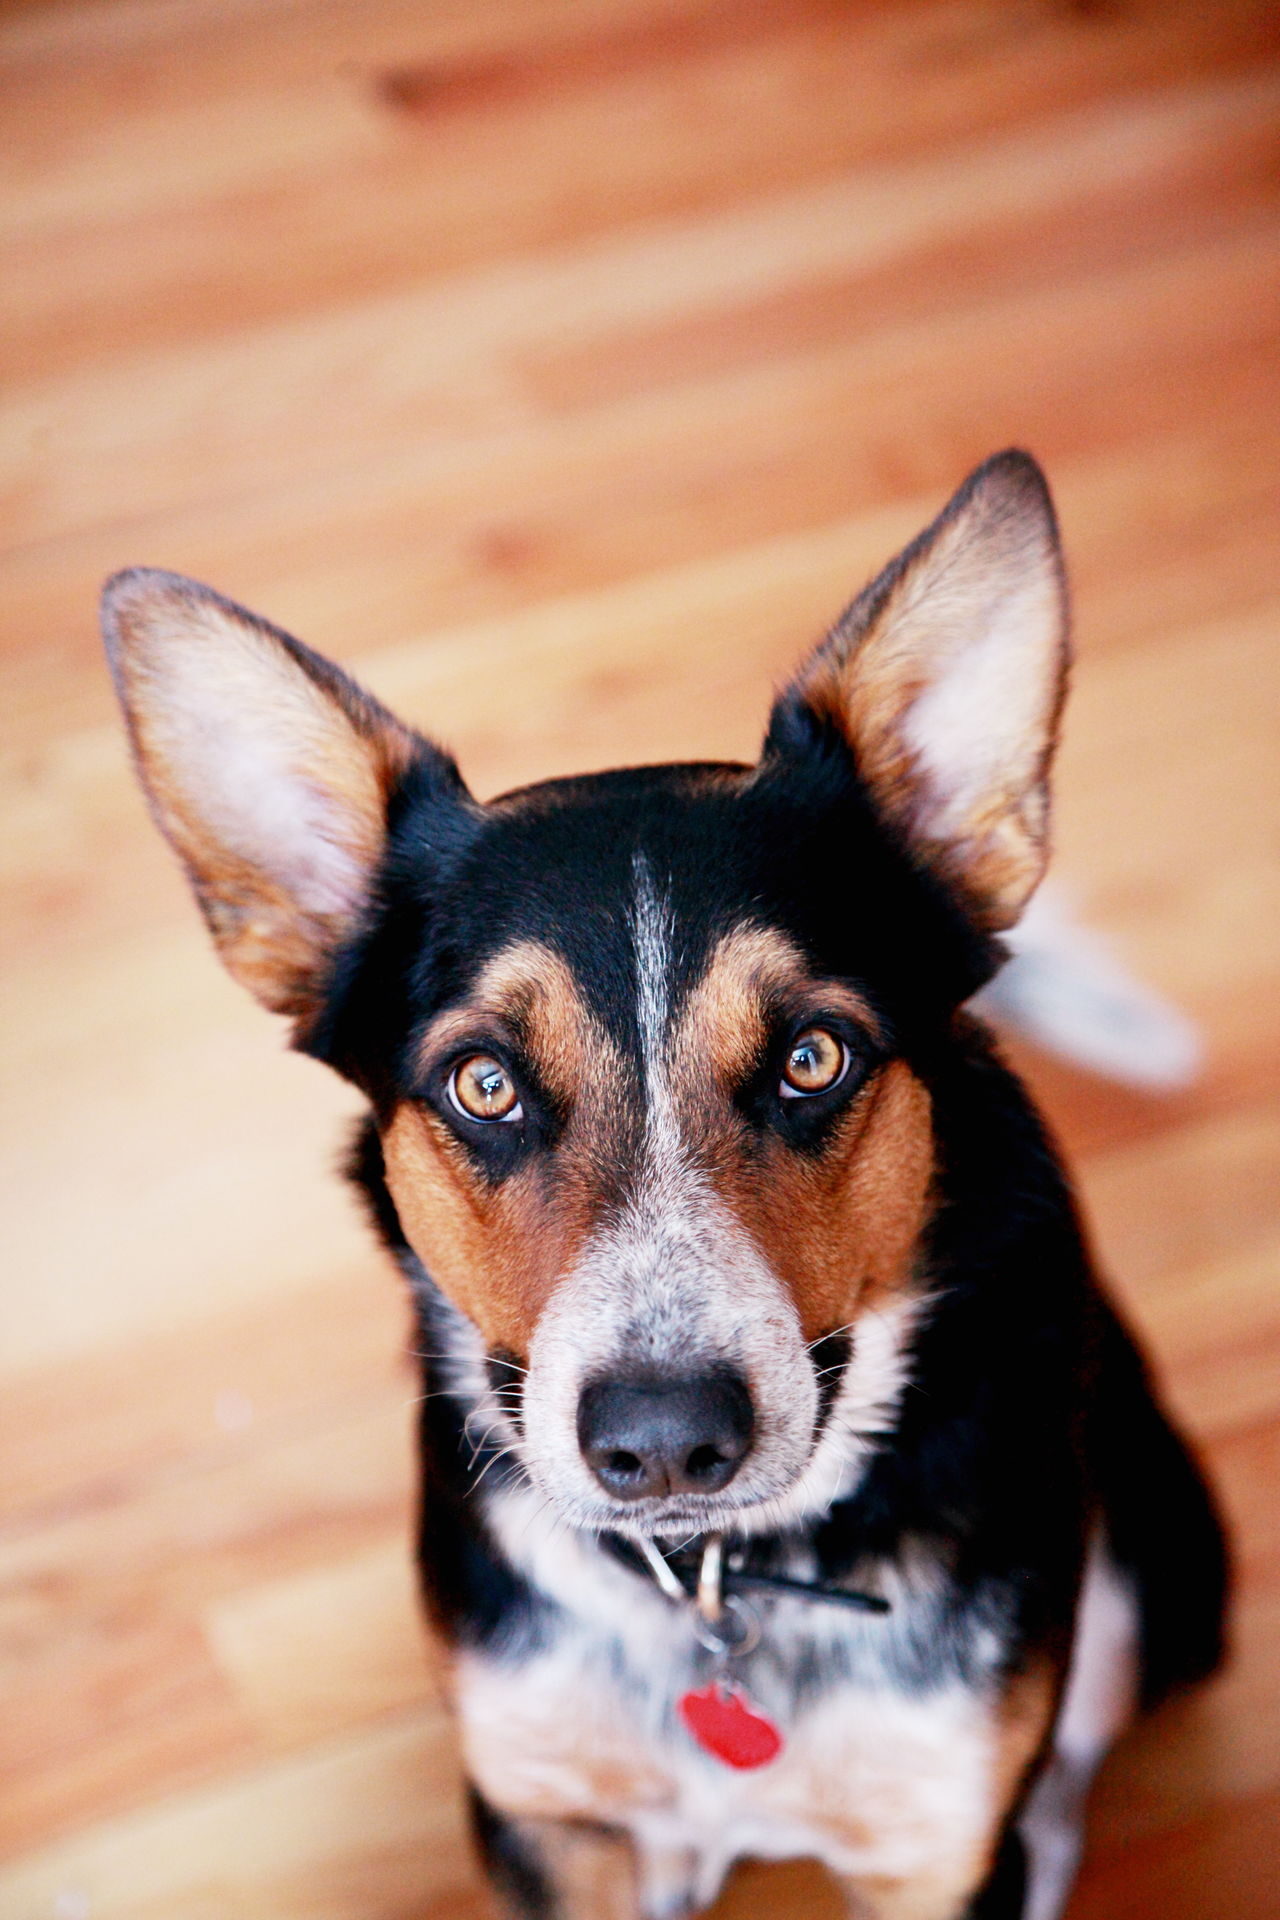 Animal Animal Themes Blue Heeler Border Collie Brown Eyes Cute Dog Eyes Family Looking At Camera Love Mixed Breed Mutt No People One Animal Pets Puppy